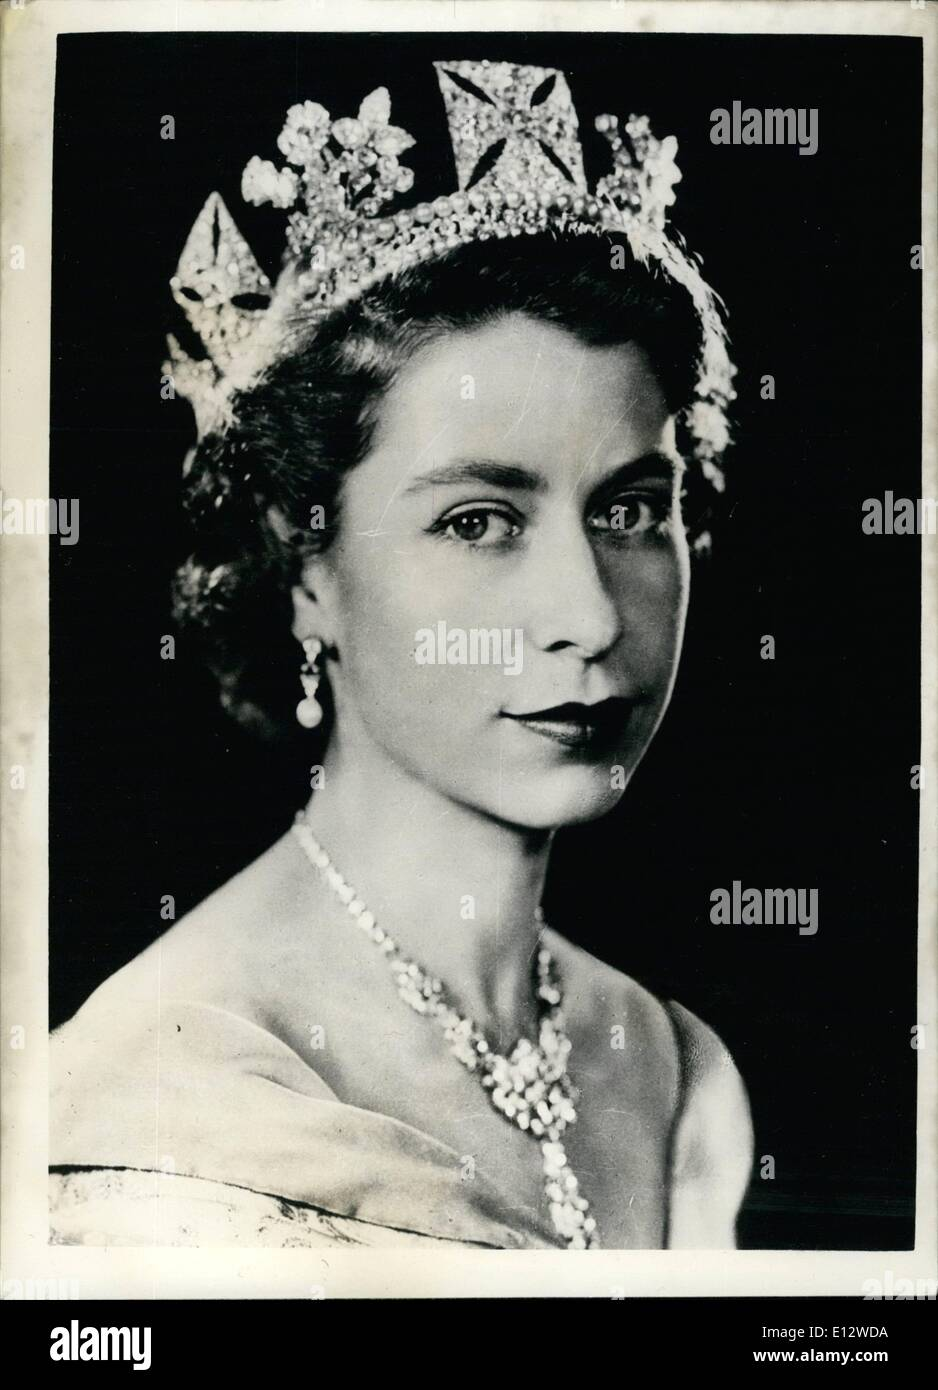 feb 26 2012 command portrait of her majesty queen elizabeth ii first E12WDA